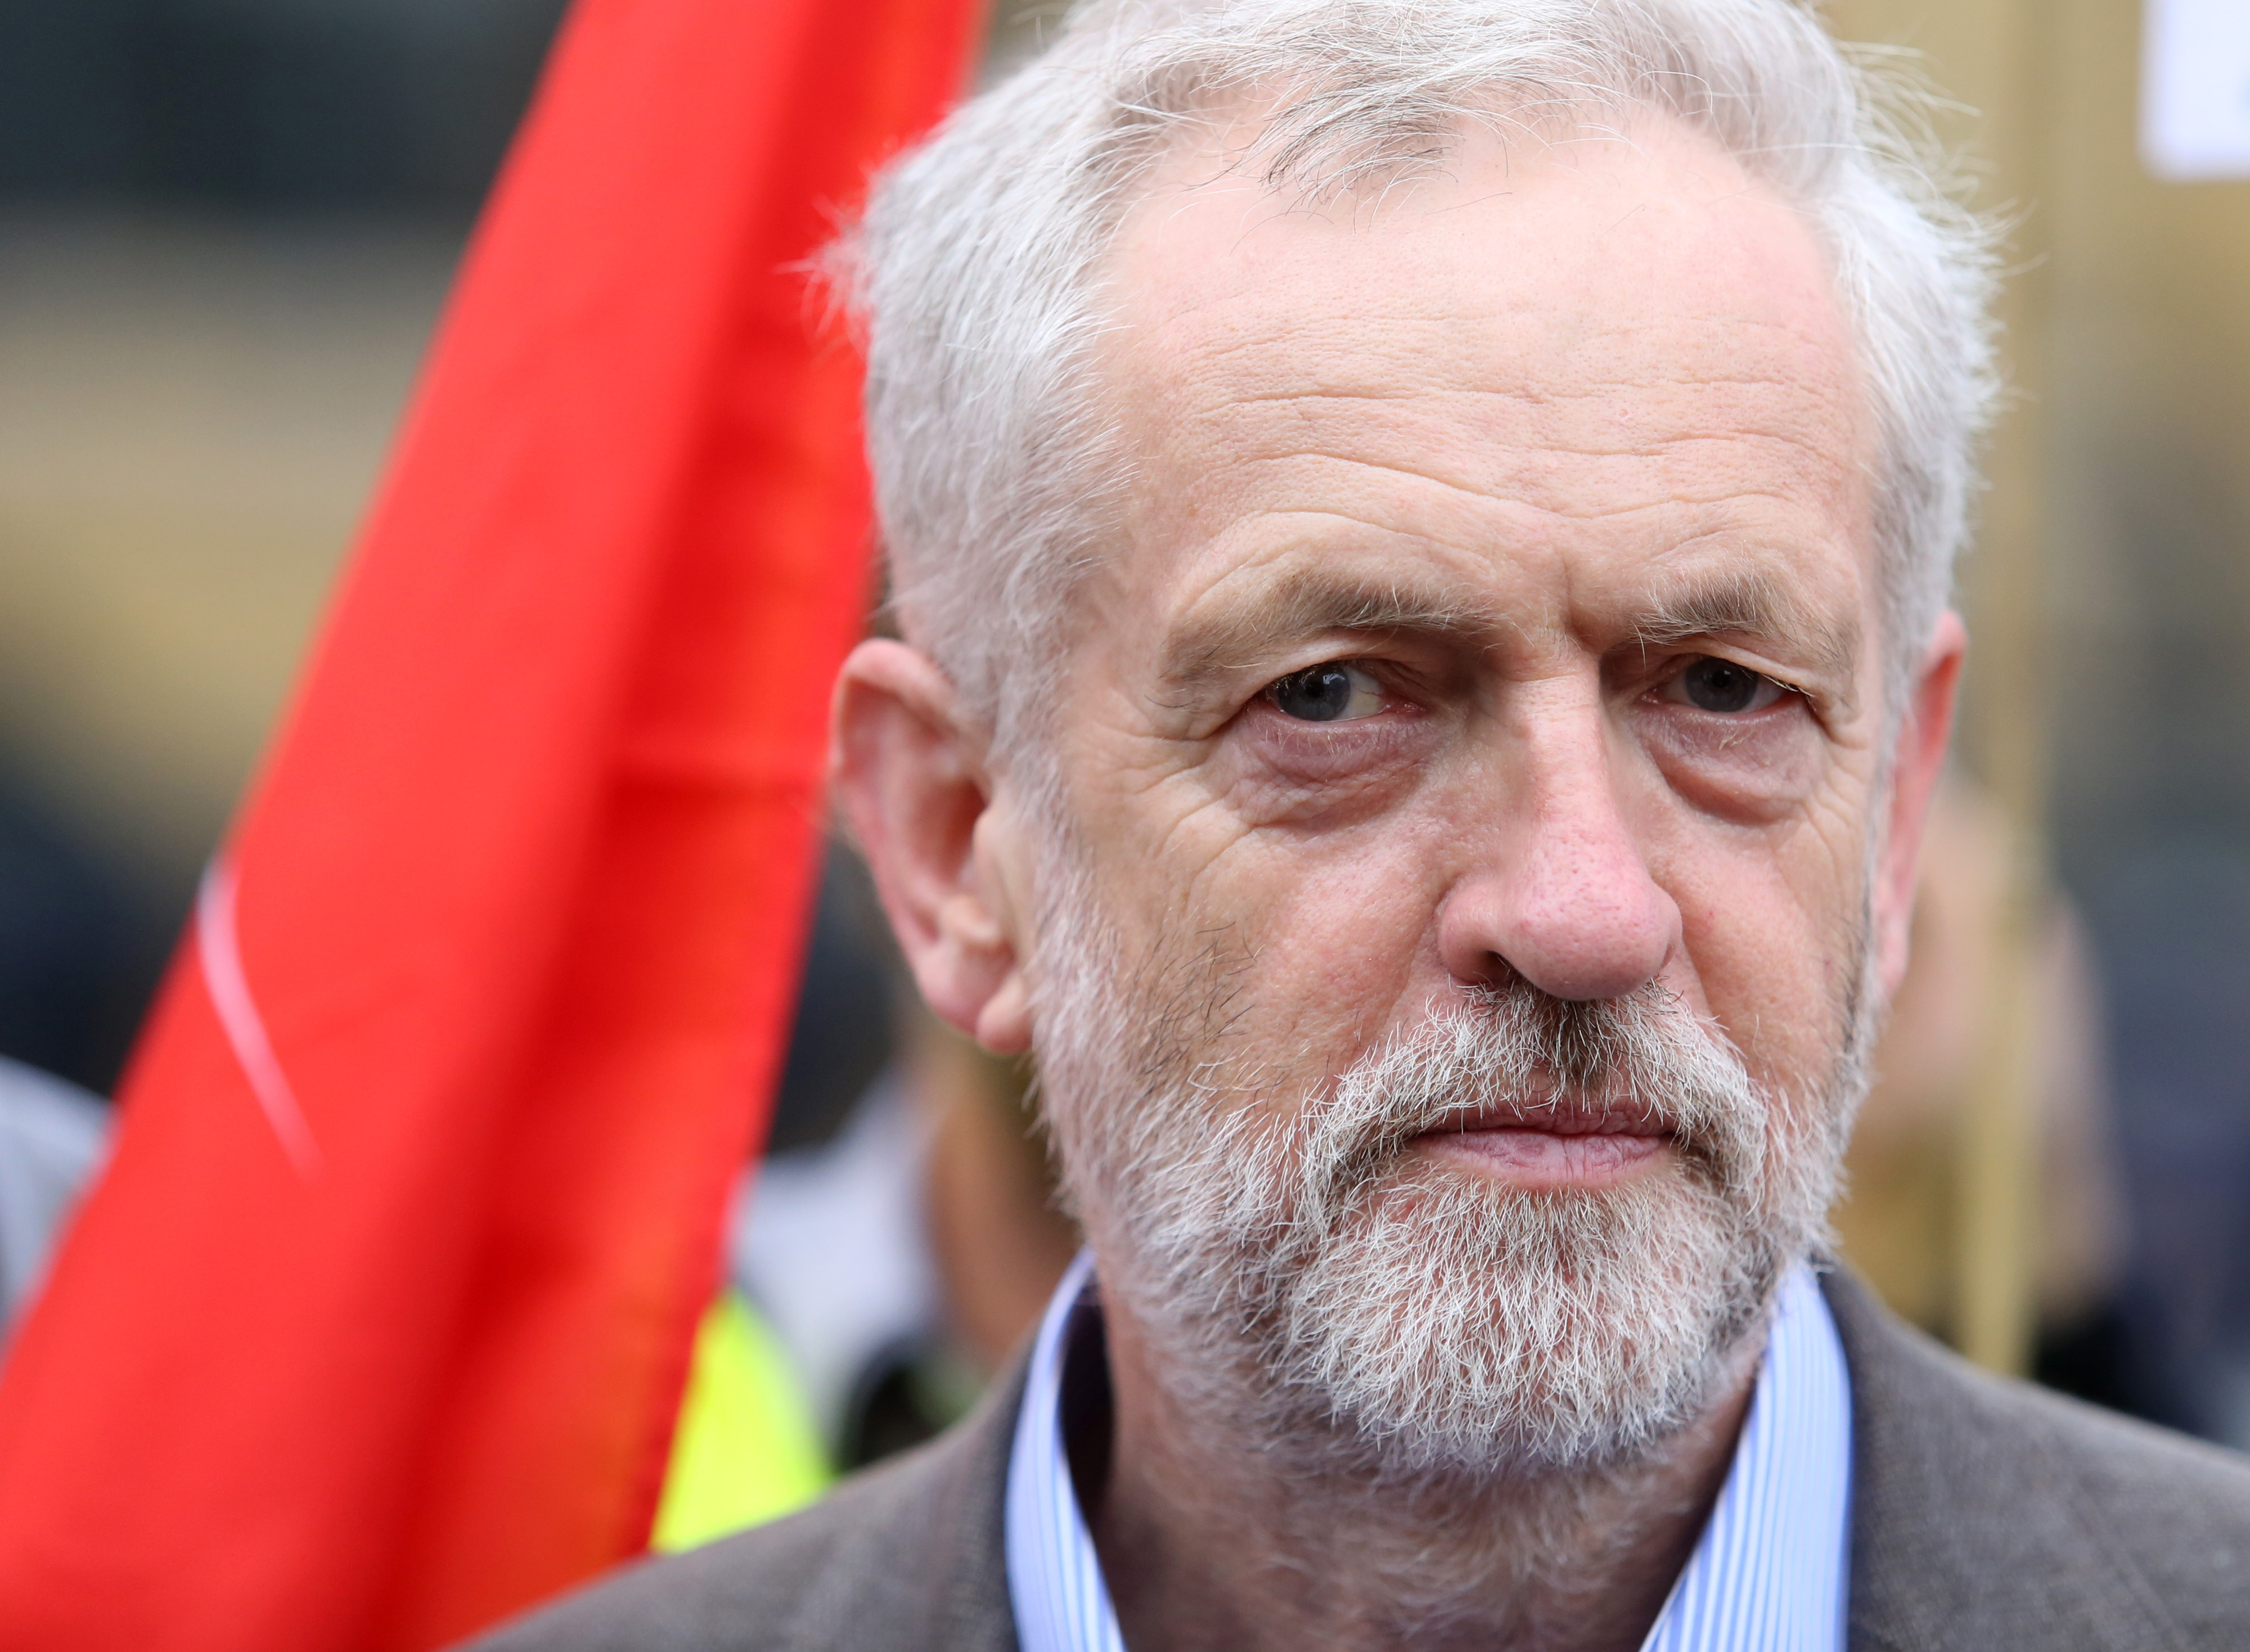 Jeremy Corbyn, candidate for the leadership of the Labour Party, pauses at an event outlining his plans for a publicly owned railway network in London on Aug. 18, 2015.